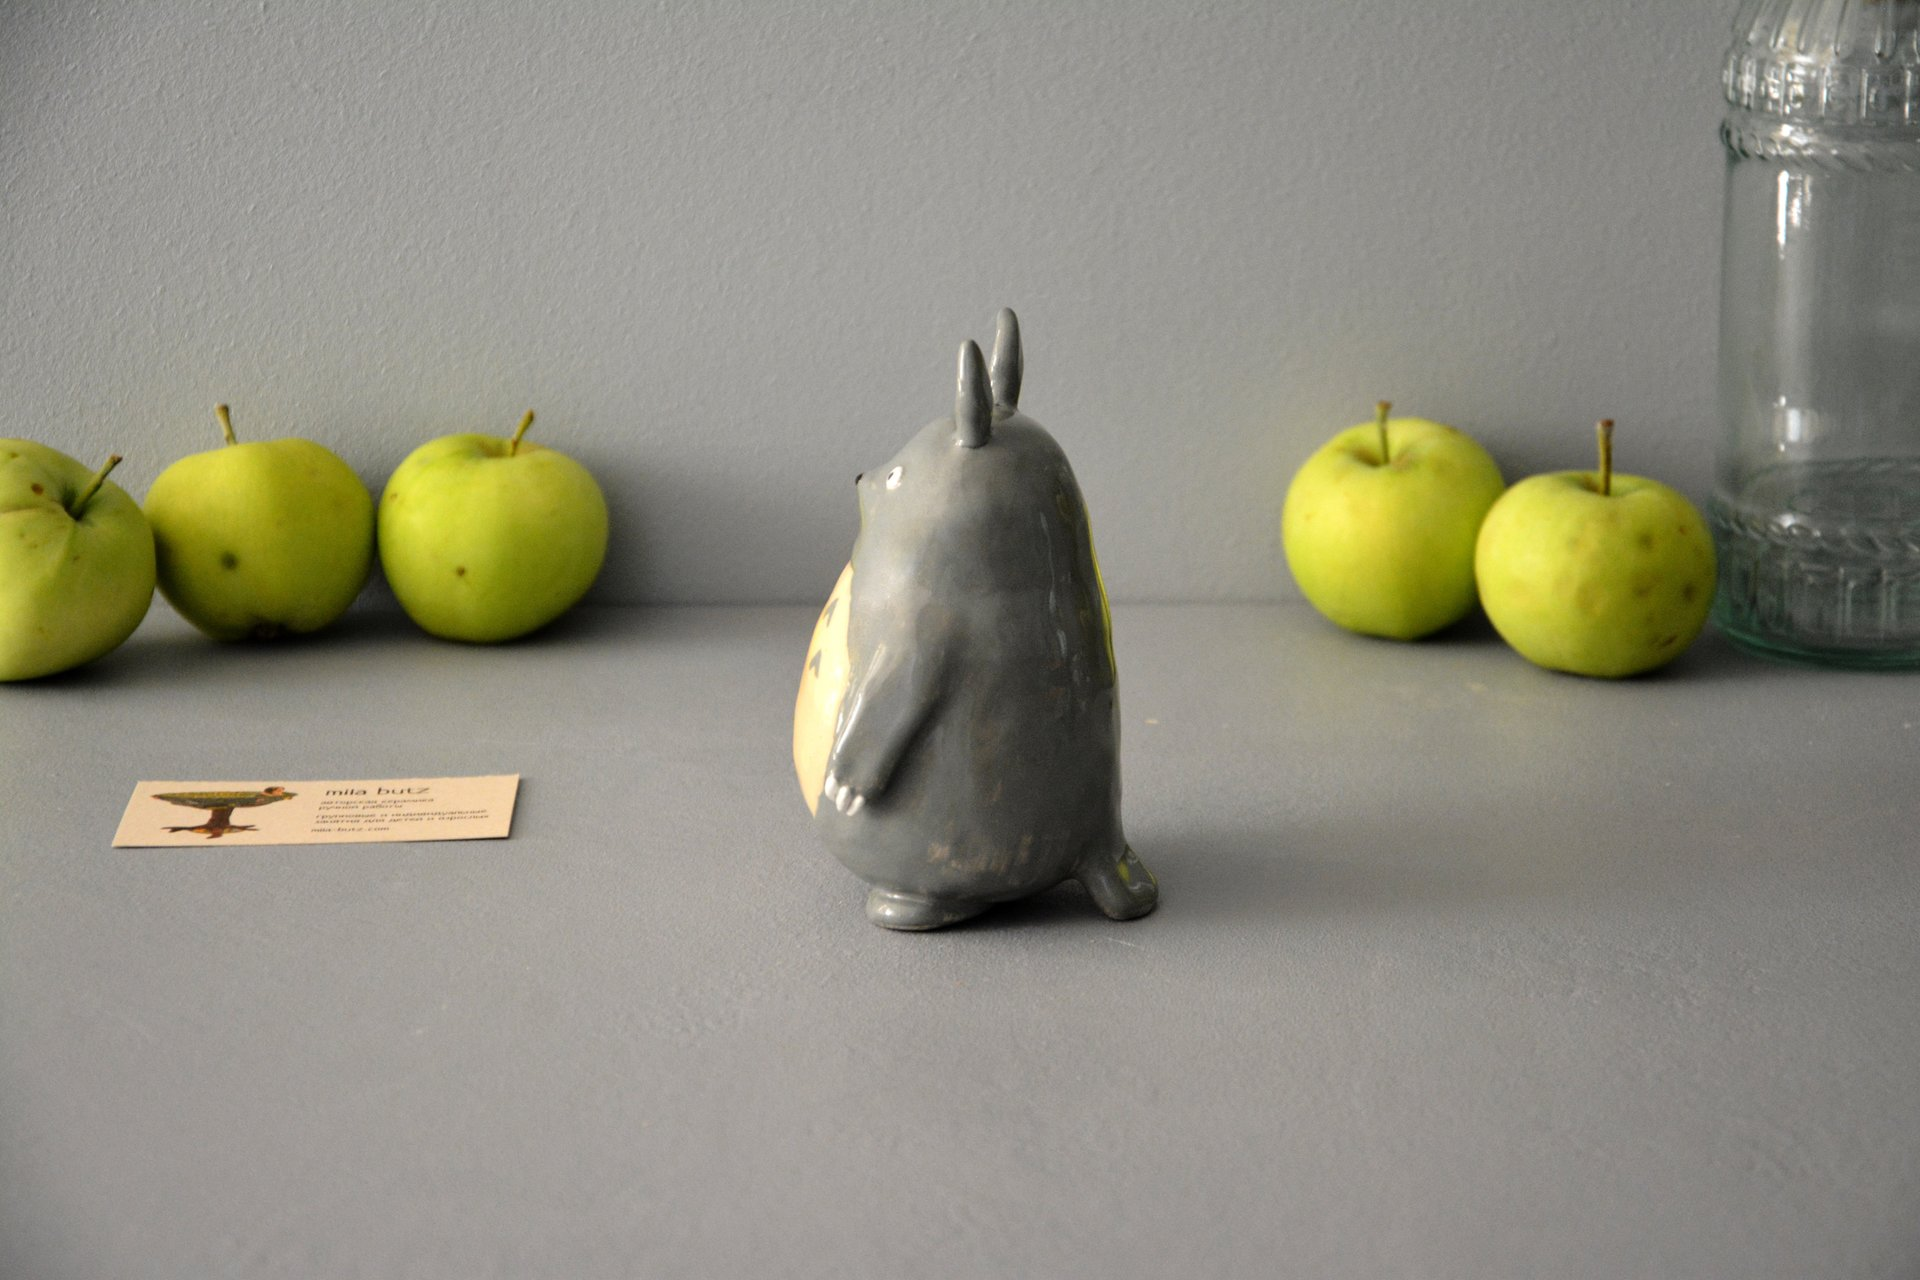 Ceramic figurine Totoro, height - 13 cm, photo 5 of 6.